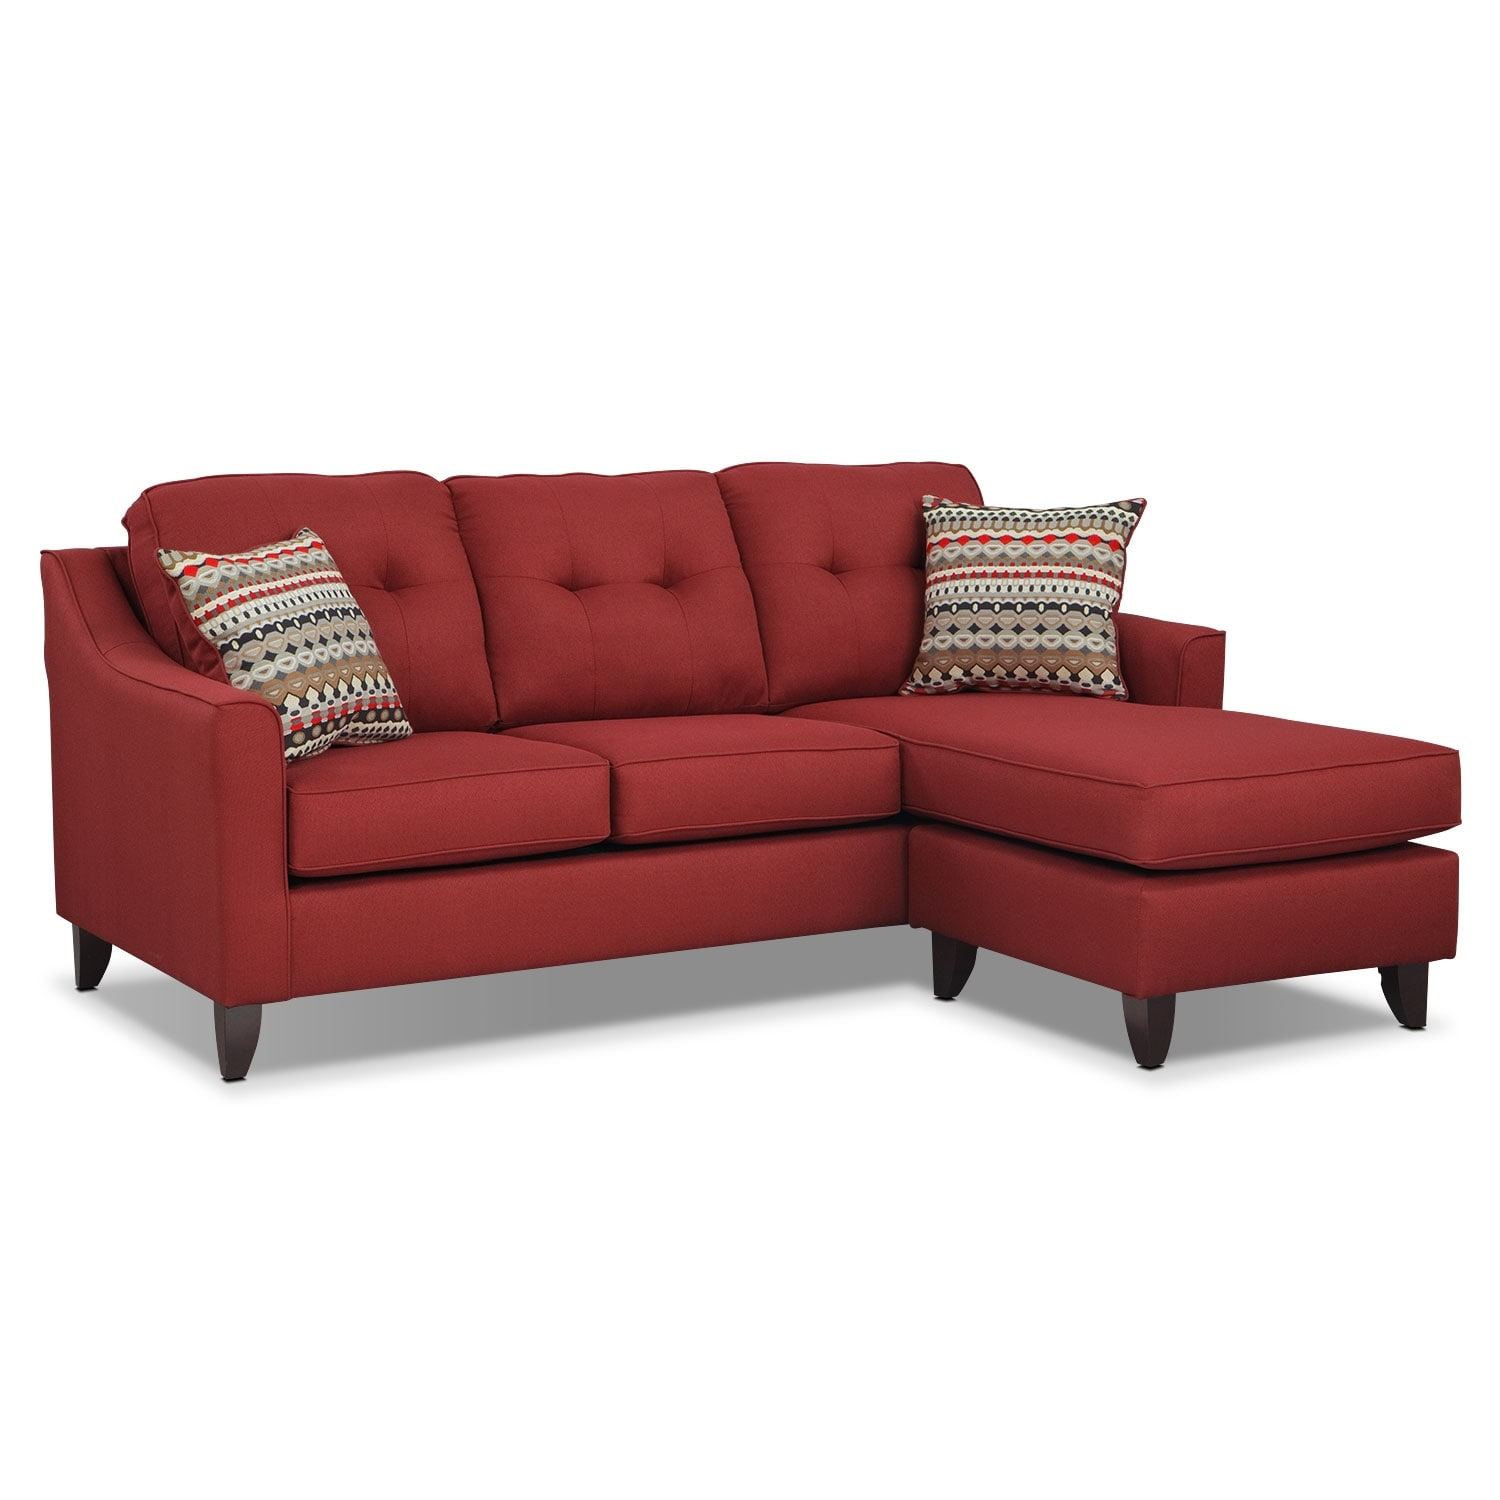 value city furniture marco chaise sofa bed matress - red |